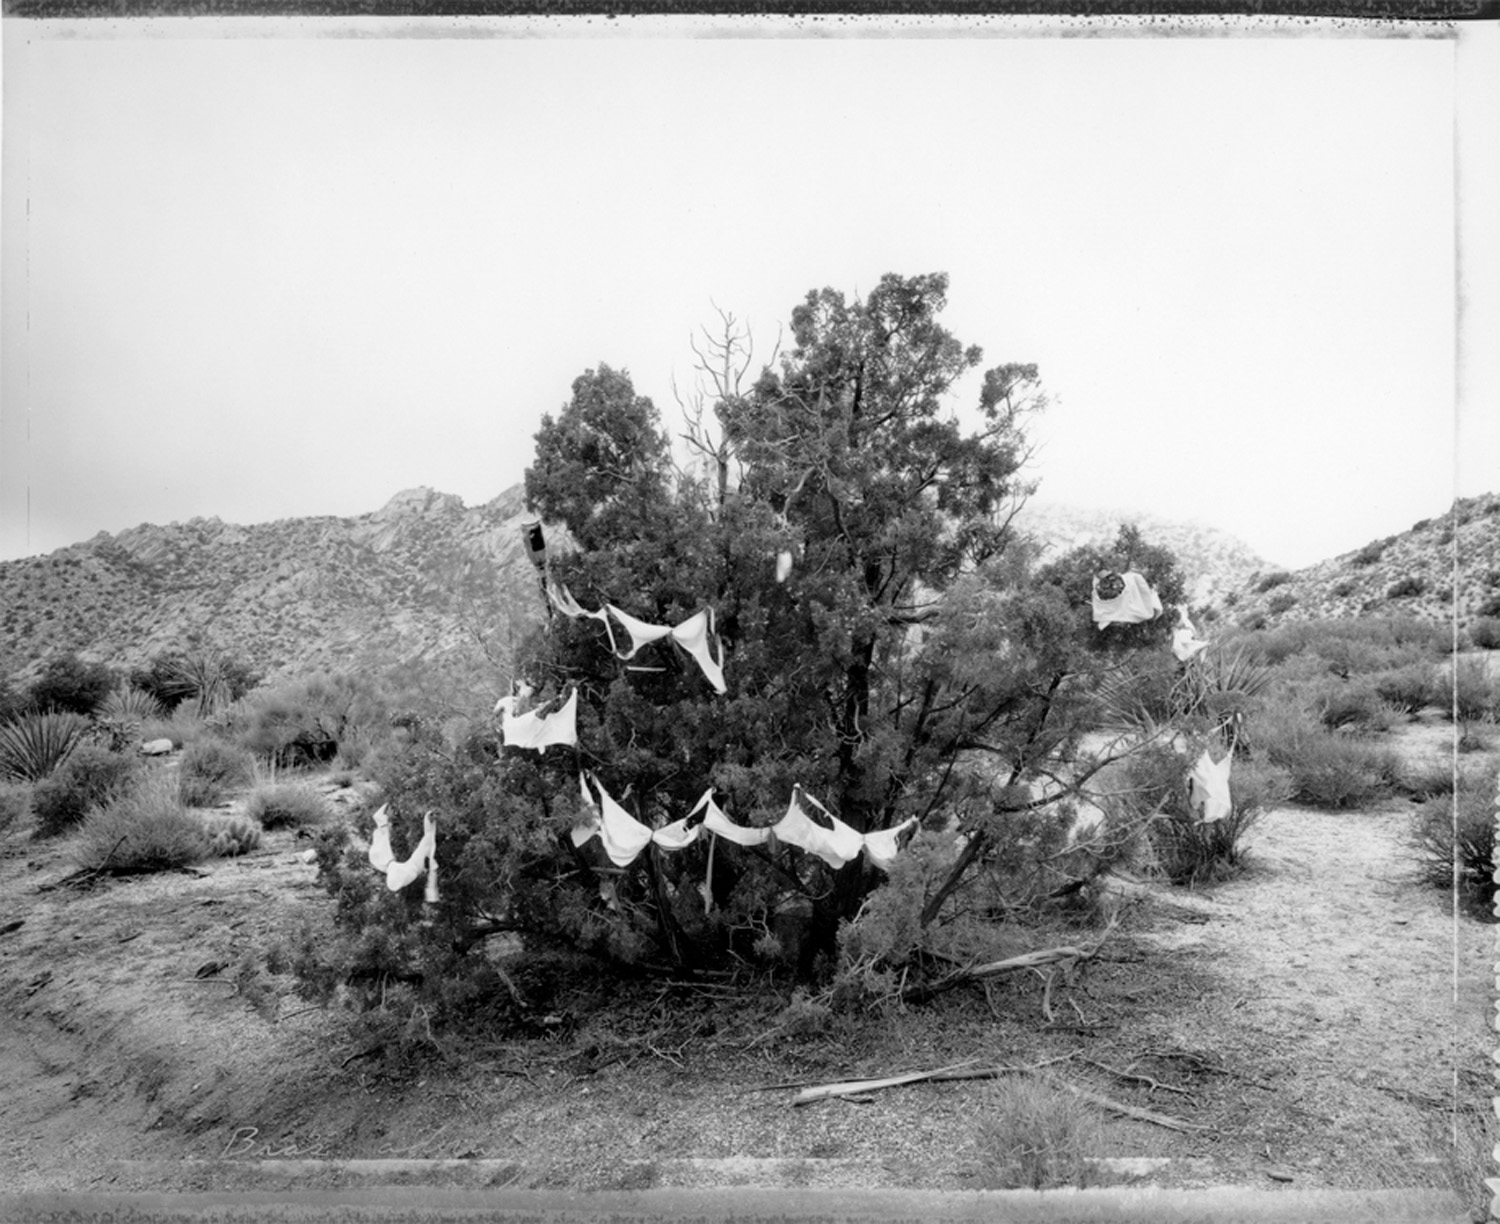 Bras decorating a juniper, Christmas Tree Pass, 1987